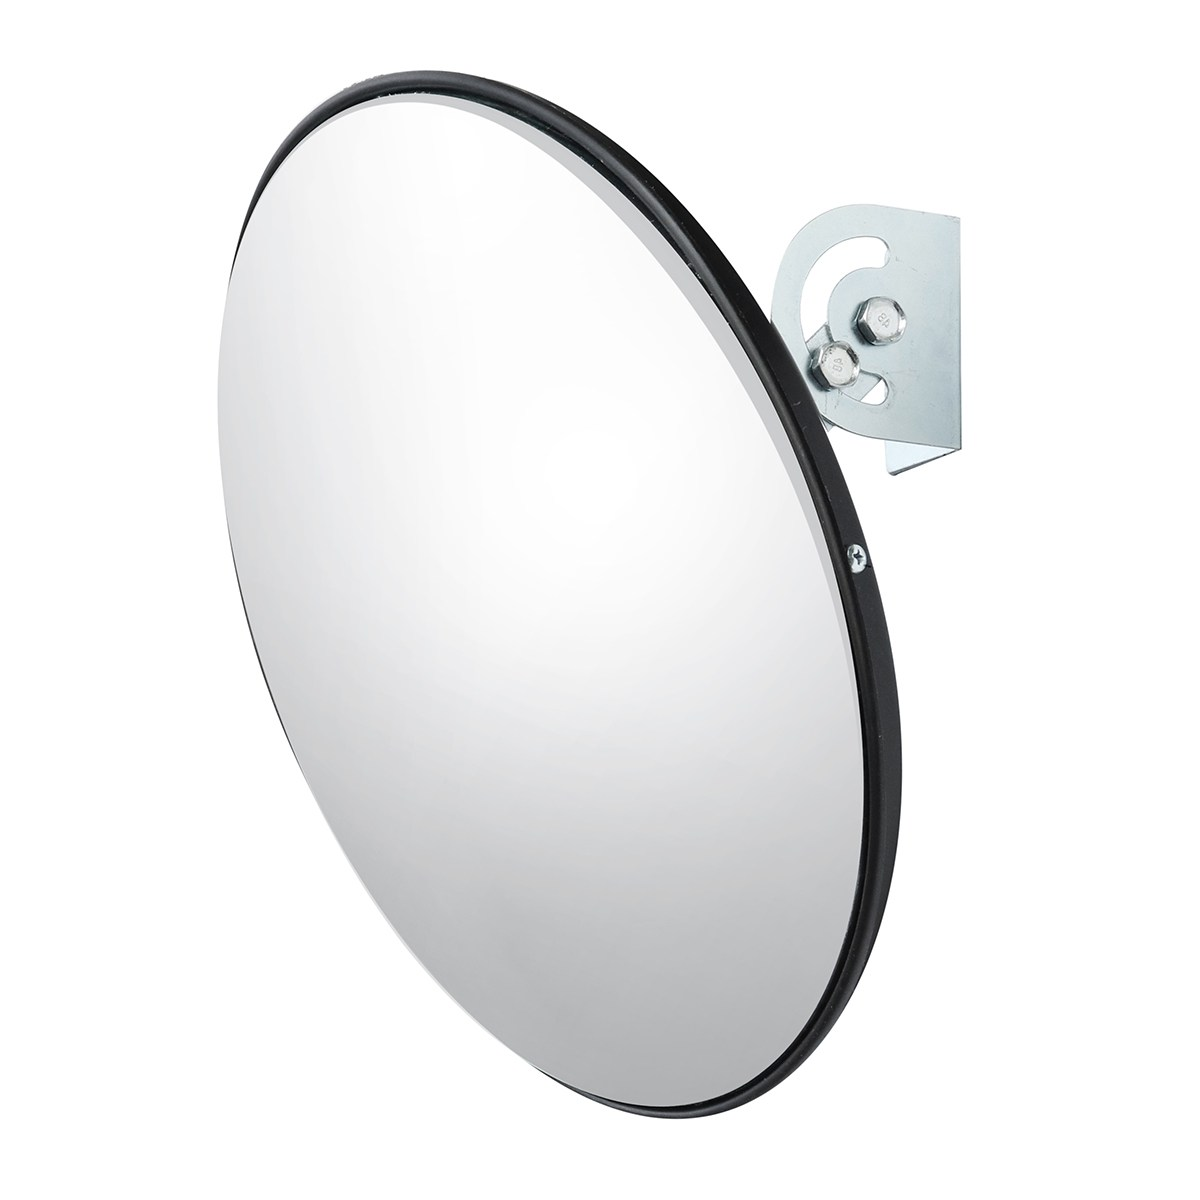 NEW Safurance 45 Cm Wide Angle Curved Convex Security Road Mirror For Indoor Burglar Traffic Signal Roadway Safety(China)